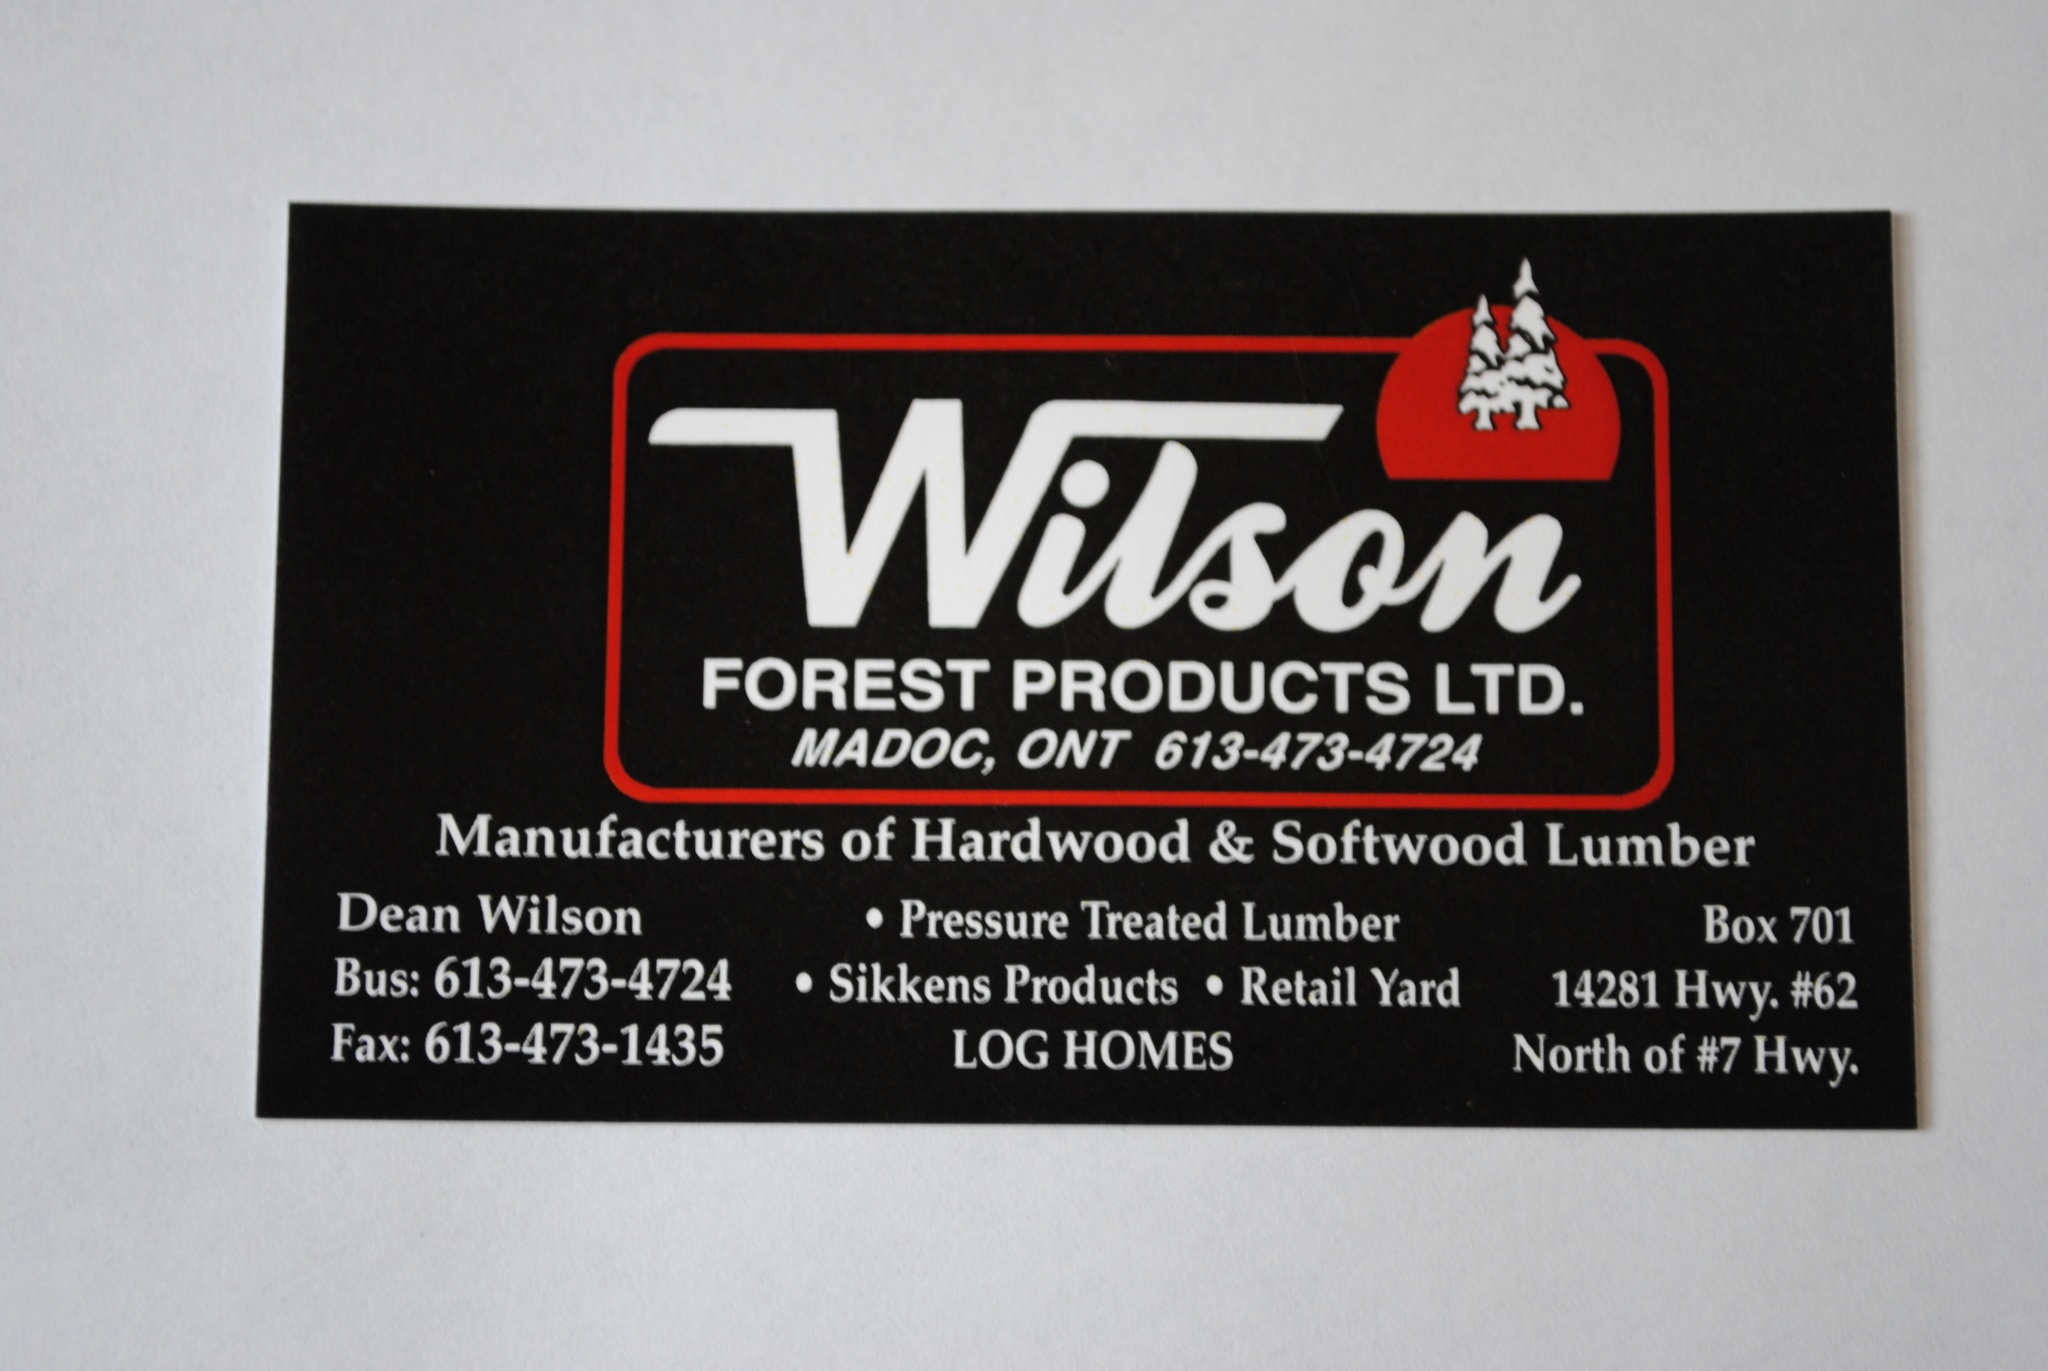 Images Wilson's Forest Products Ltd